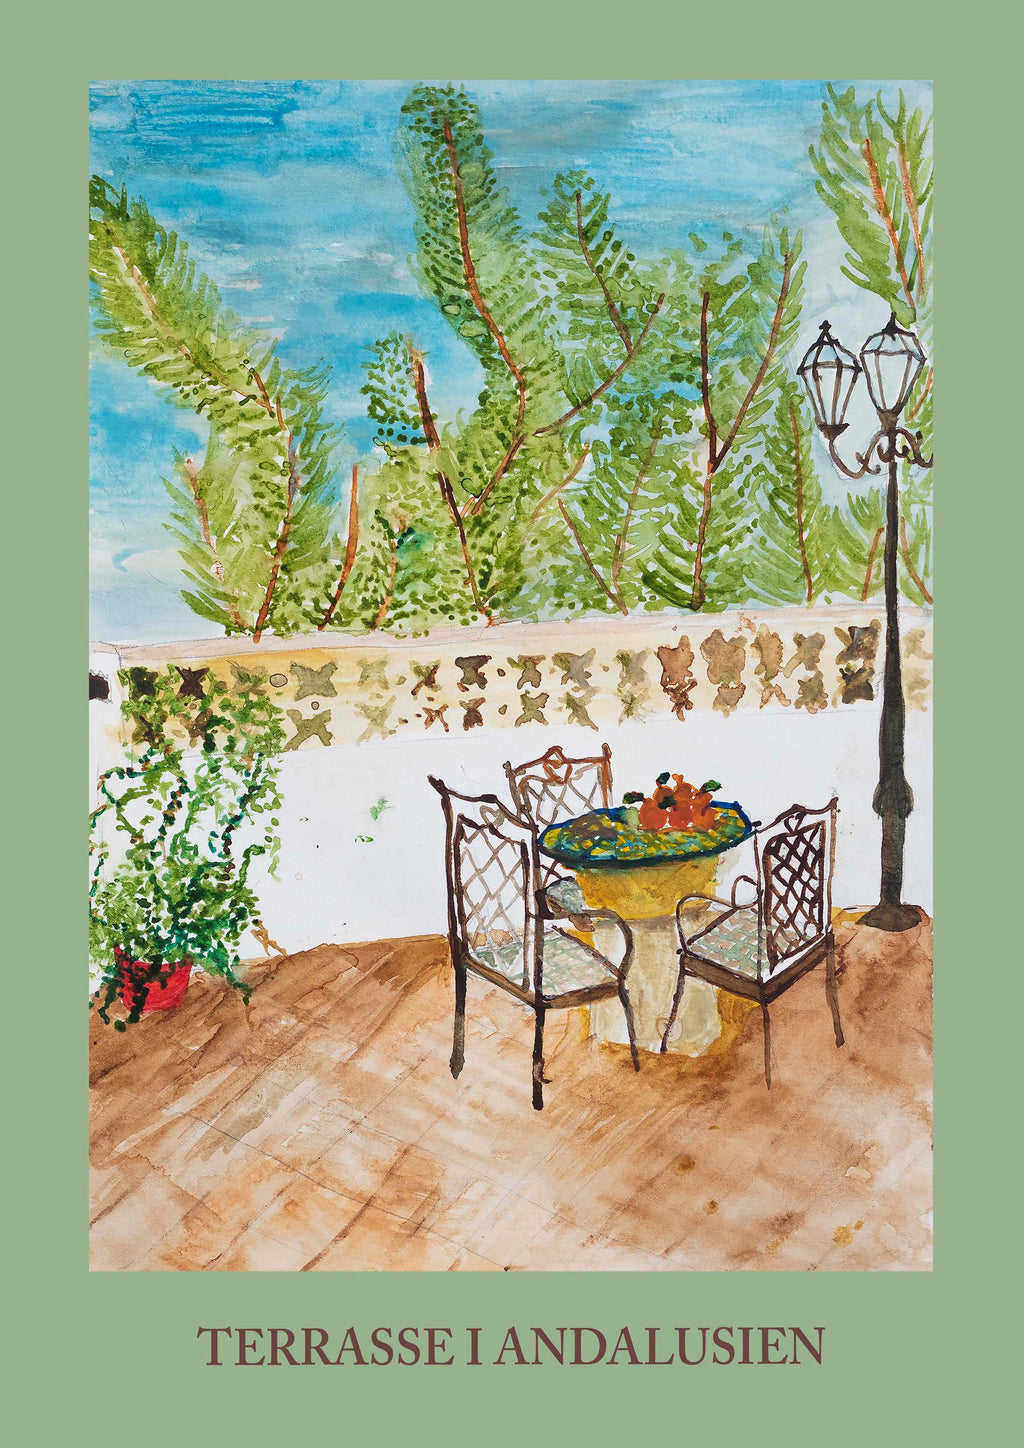 Terrasse i Andalusien - Laura Tams B. Plakater